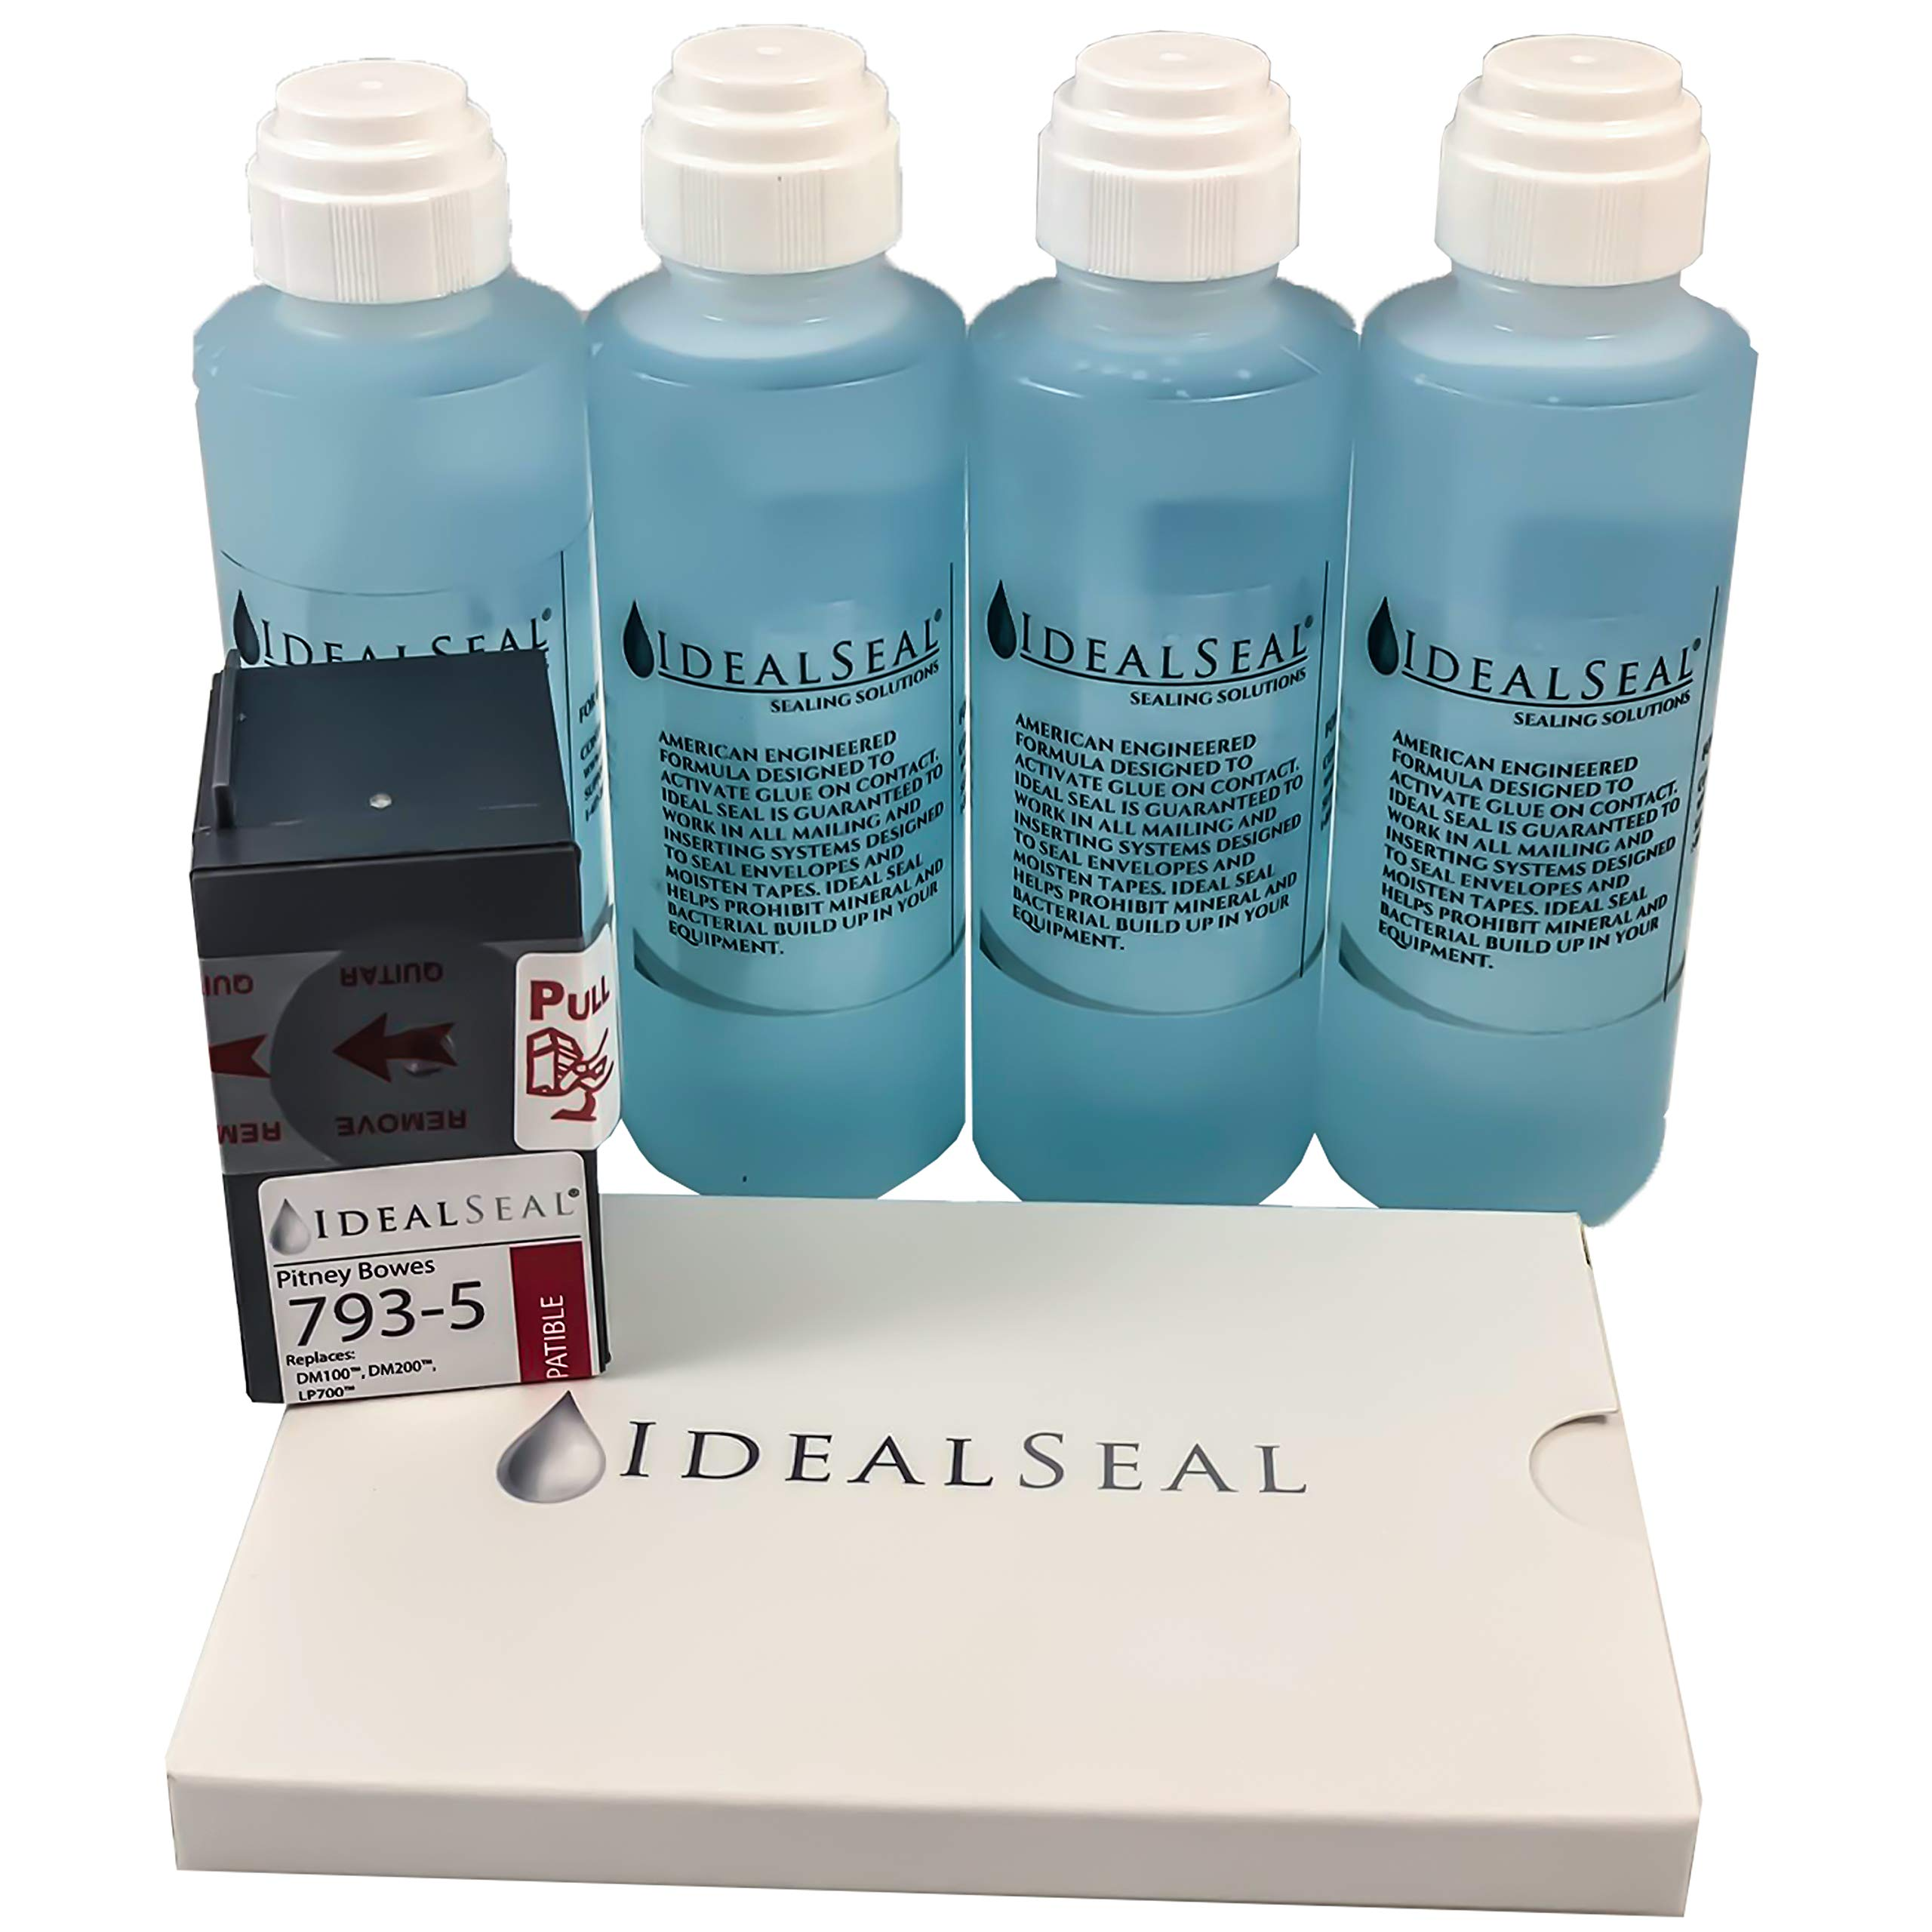 Preferred Postage Supplies Mailing Supply Pack, Contains 50 4 x 6 Postage Meter Tapes, One 793-5 Ink Cartridge & 4 oz Dabber Bottles of Sealing Solution by Preferred Postage Supplies